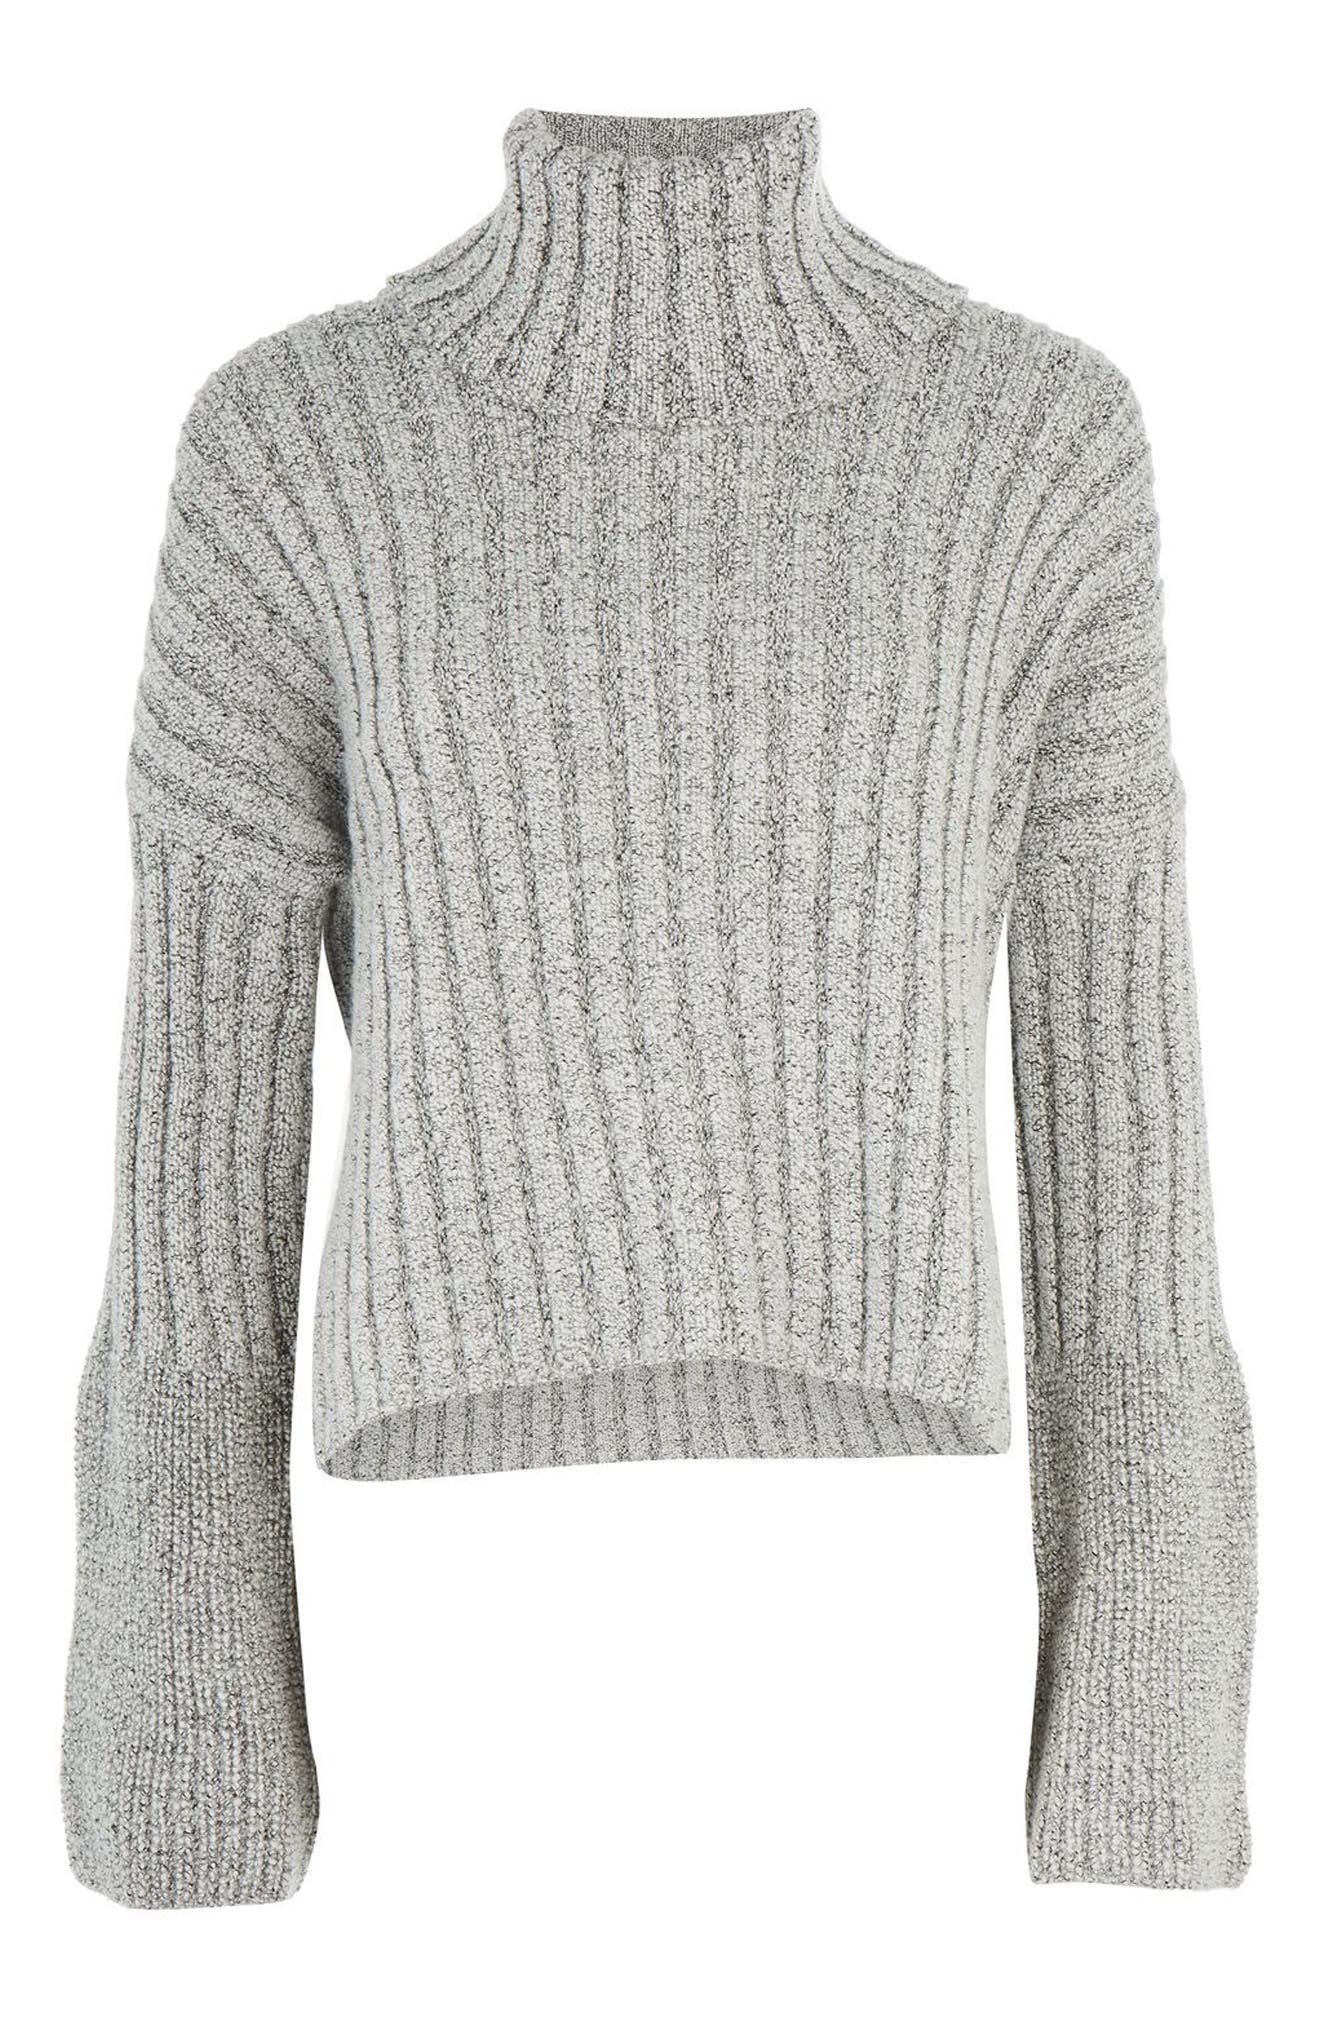 Women's Grey Turtleneck Sweaters | Nordstrom